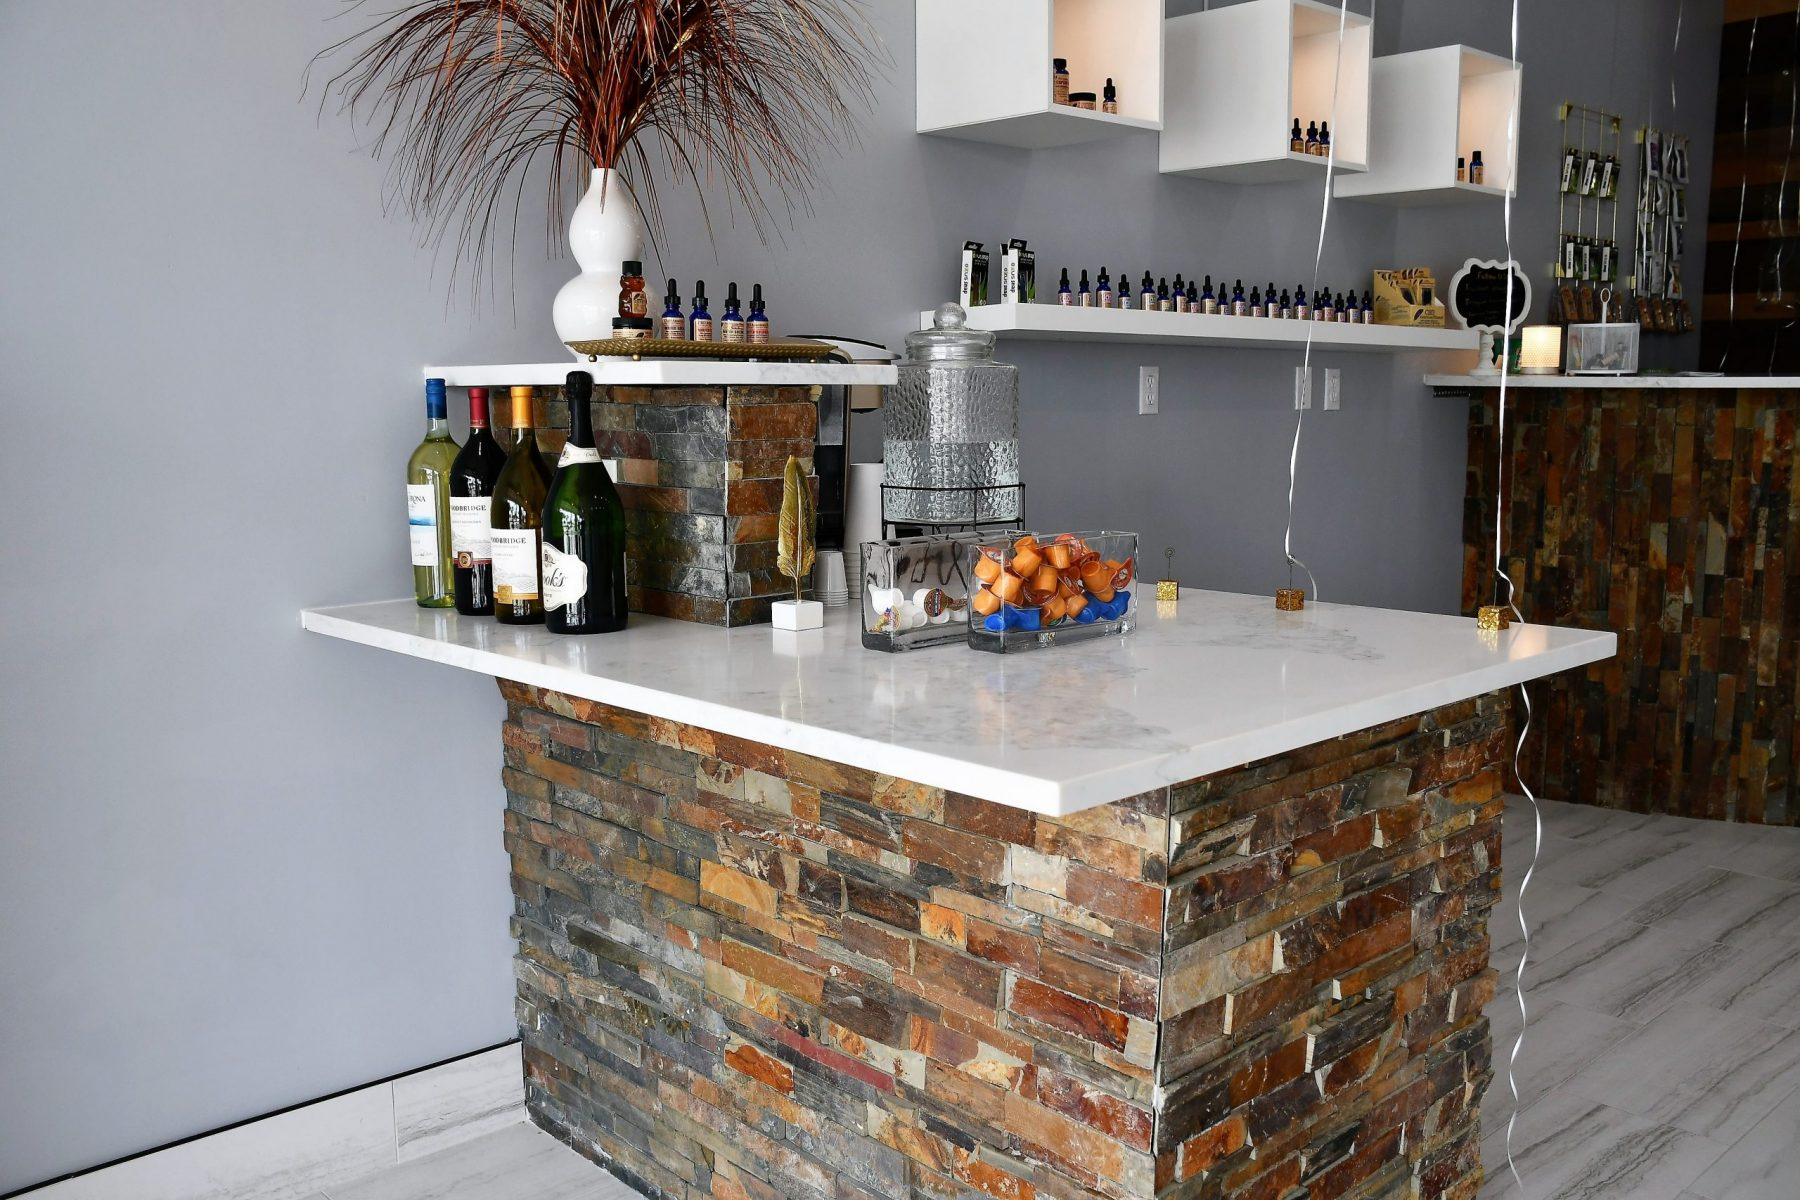 A small counter with wine, CBD oils, and refreshments.